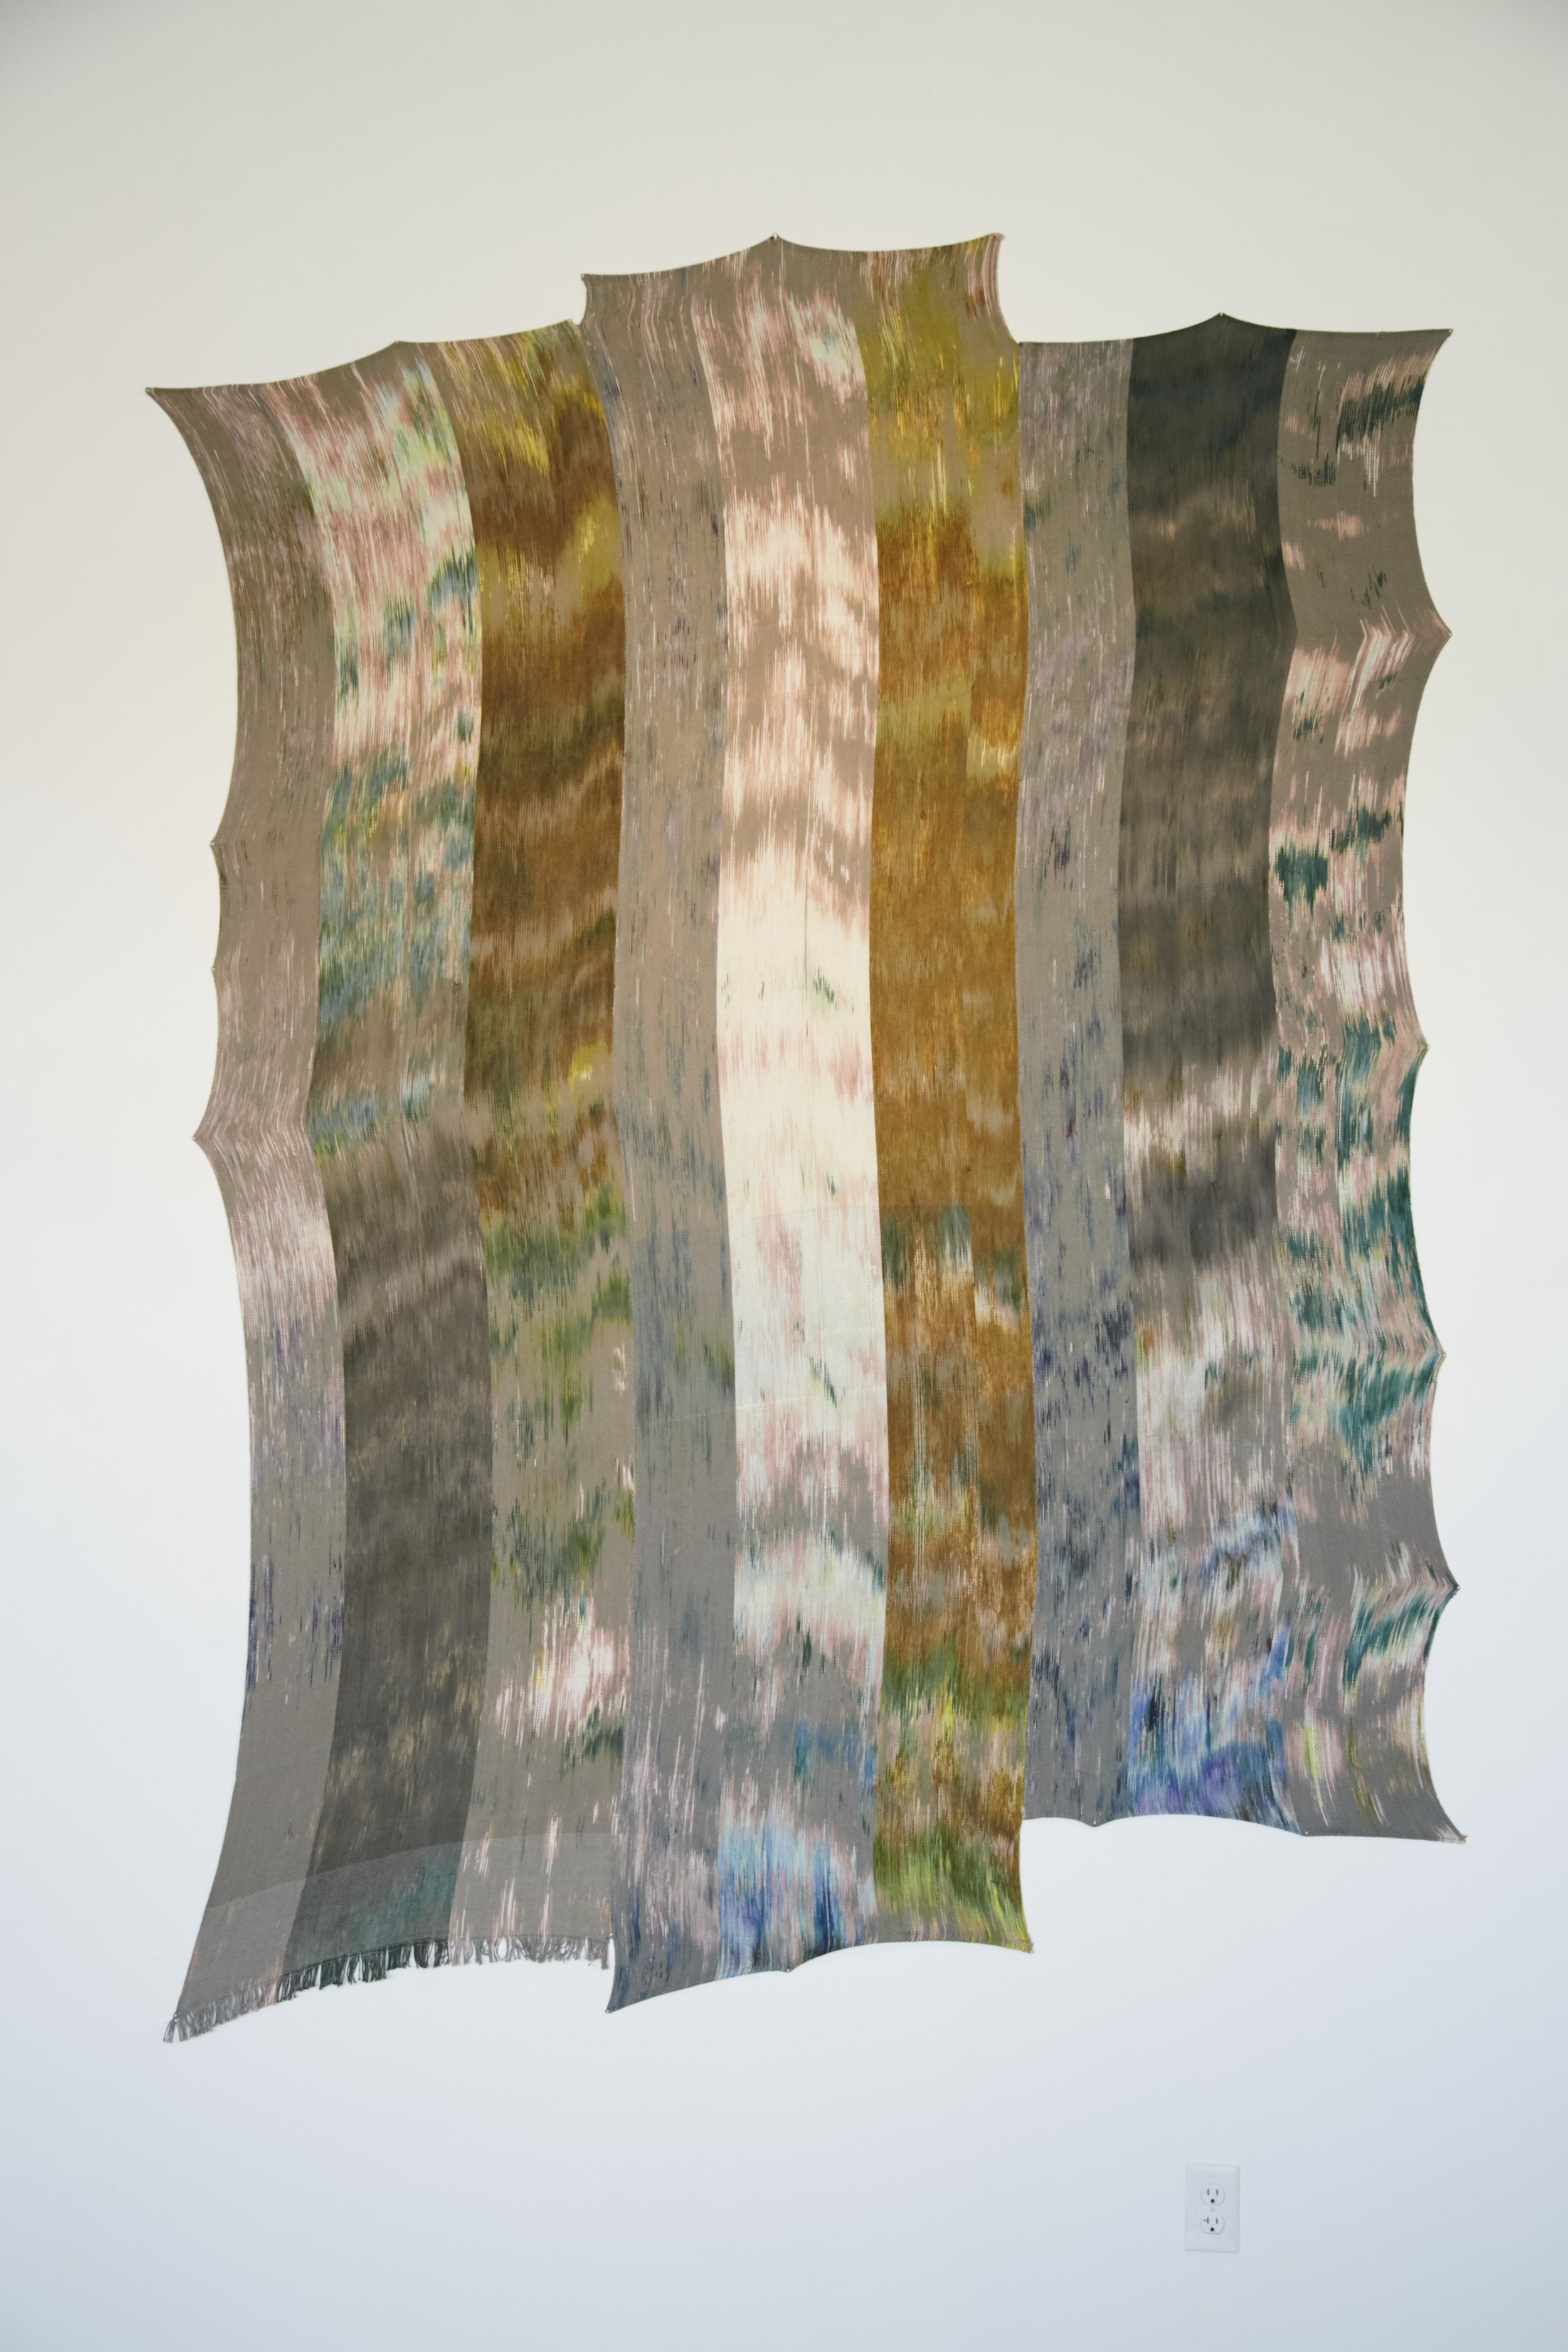 Victoria Manganiello,  Untitled #50 , 2016, Natural and Synthetic Fiber and Dye, , 118 x 62 x 1 in.